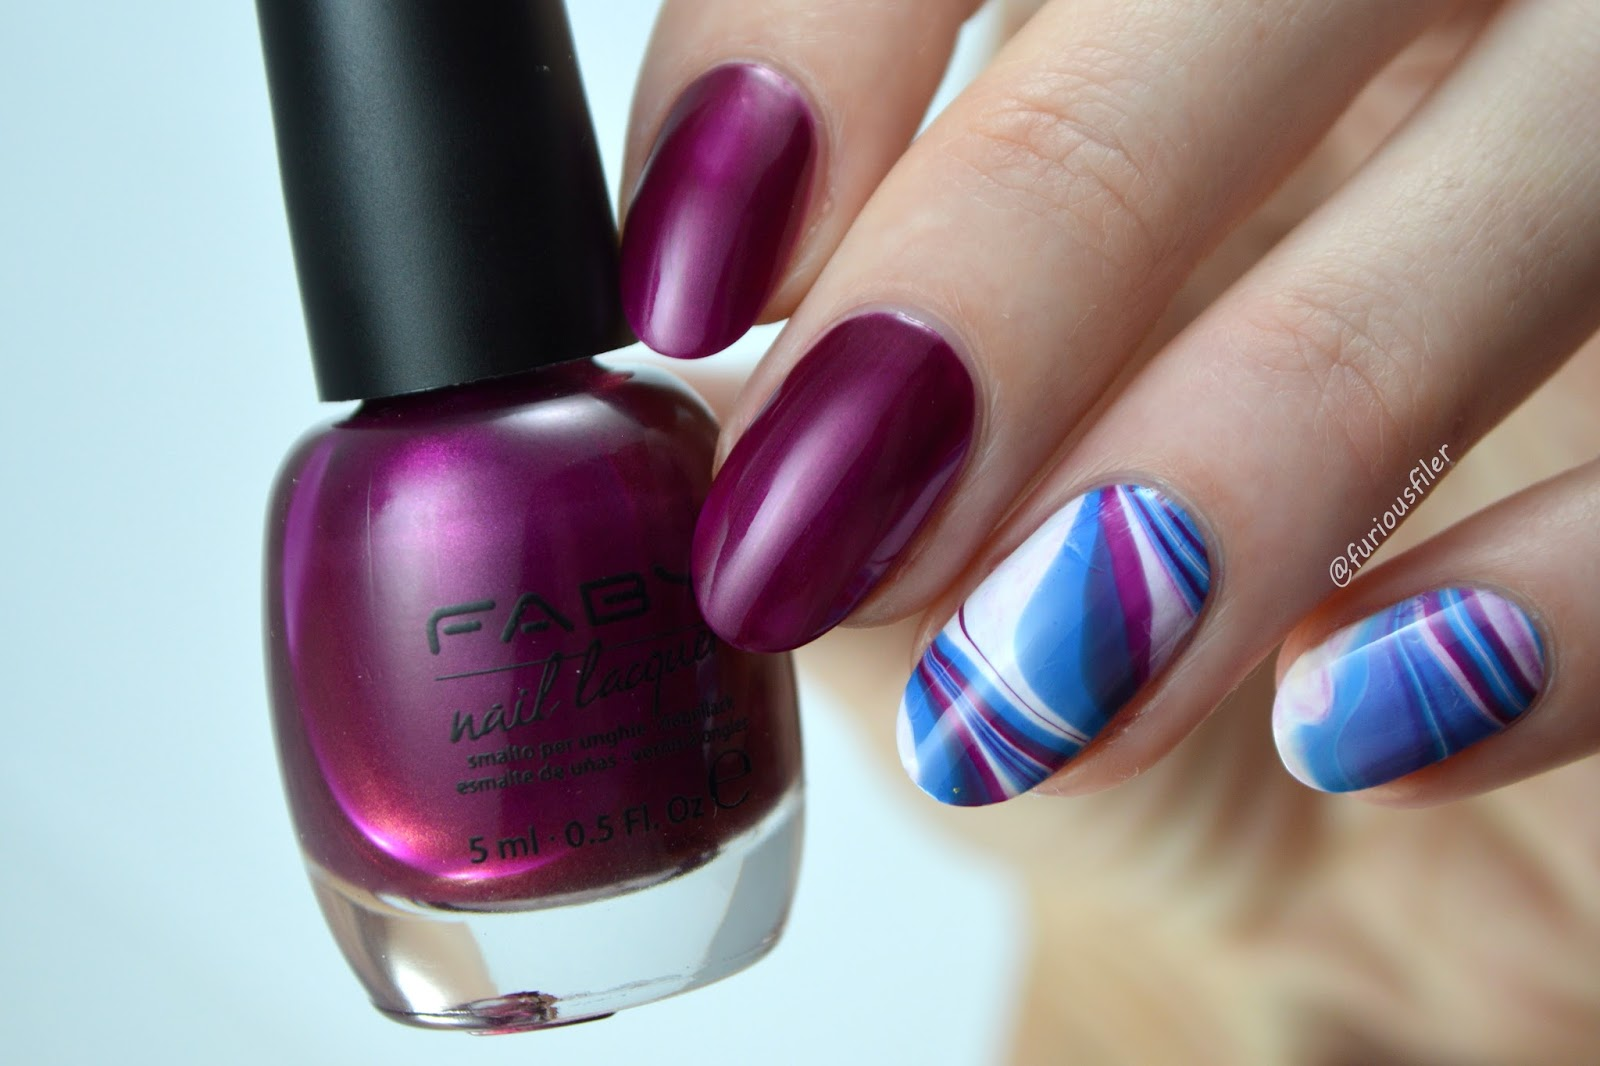 Water marble video tutorial featuring faby furious filer furious filer water marble faby video tutorial metallic prinsesfo Images